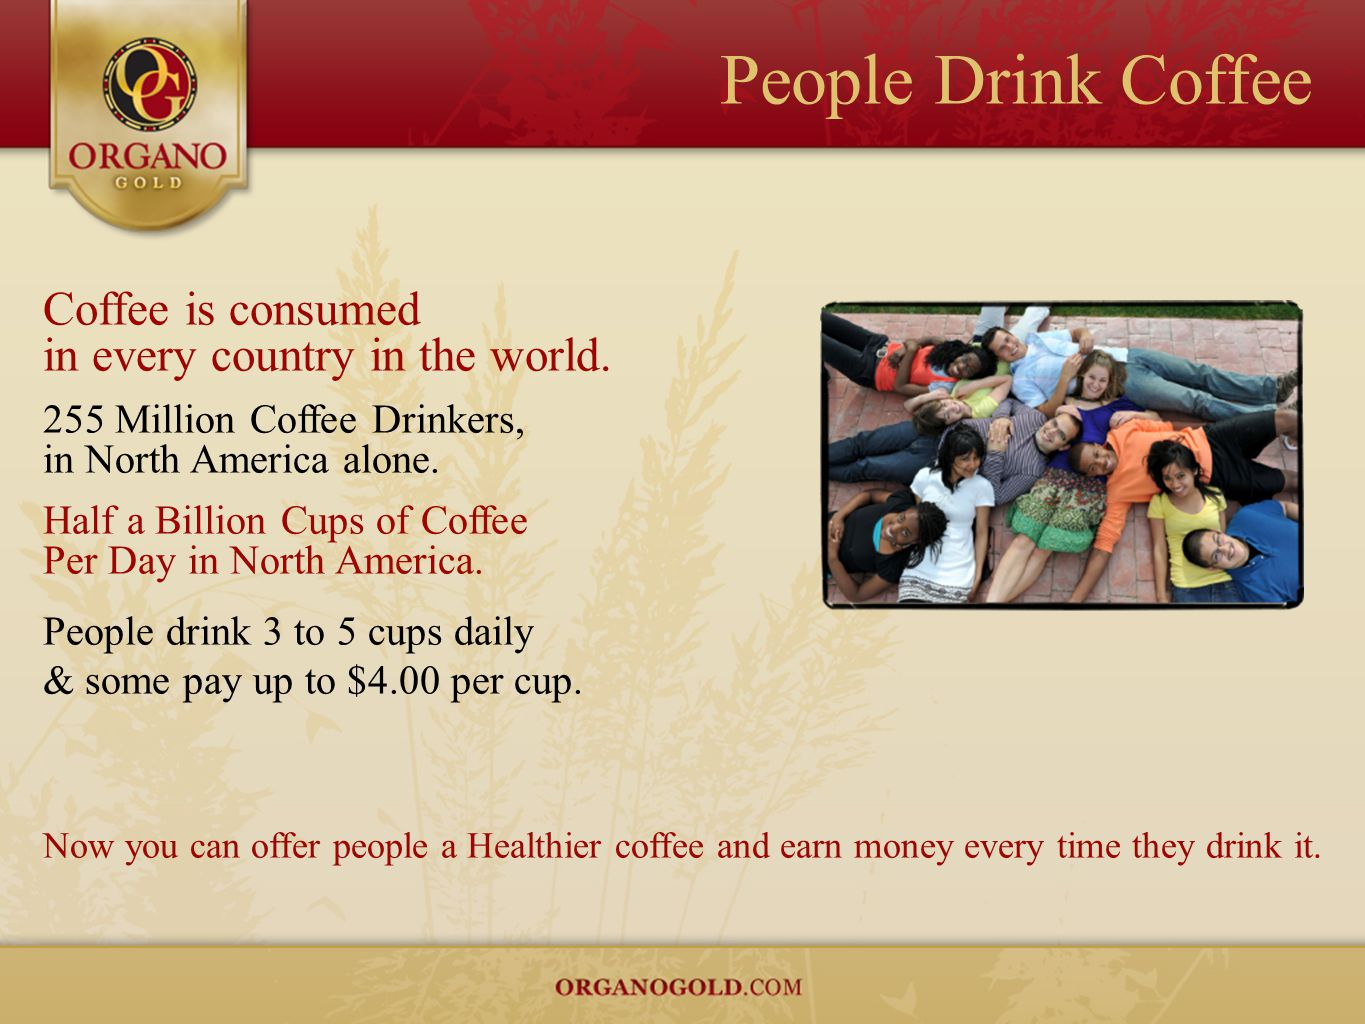 People Drink Coffee Coffee is consumed in every country in the world. 255 Million Coffee Drinkers, in North America alone. Half a Billion Cups of Coff